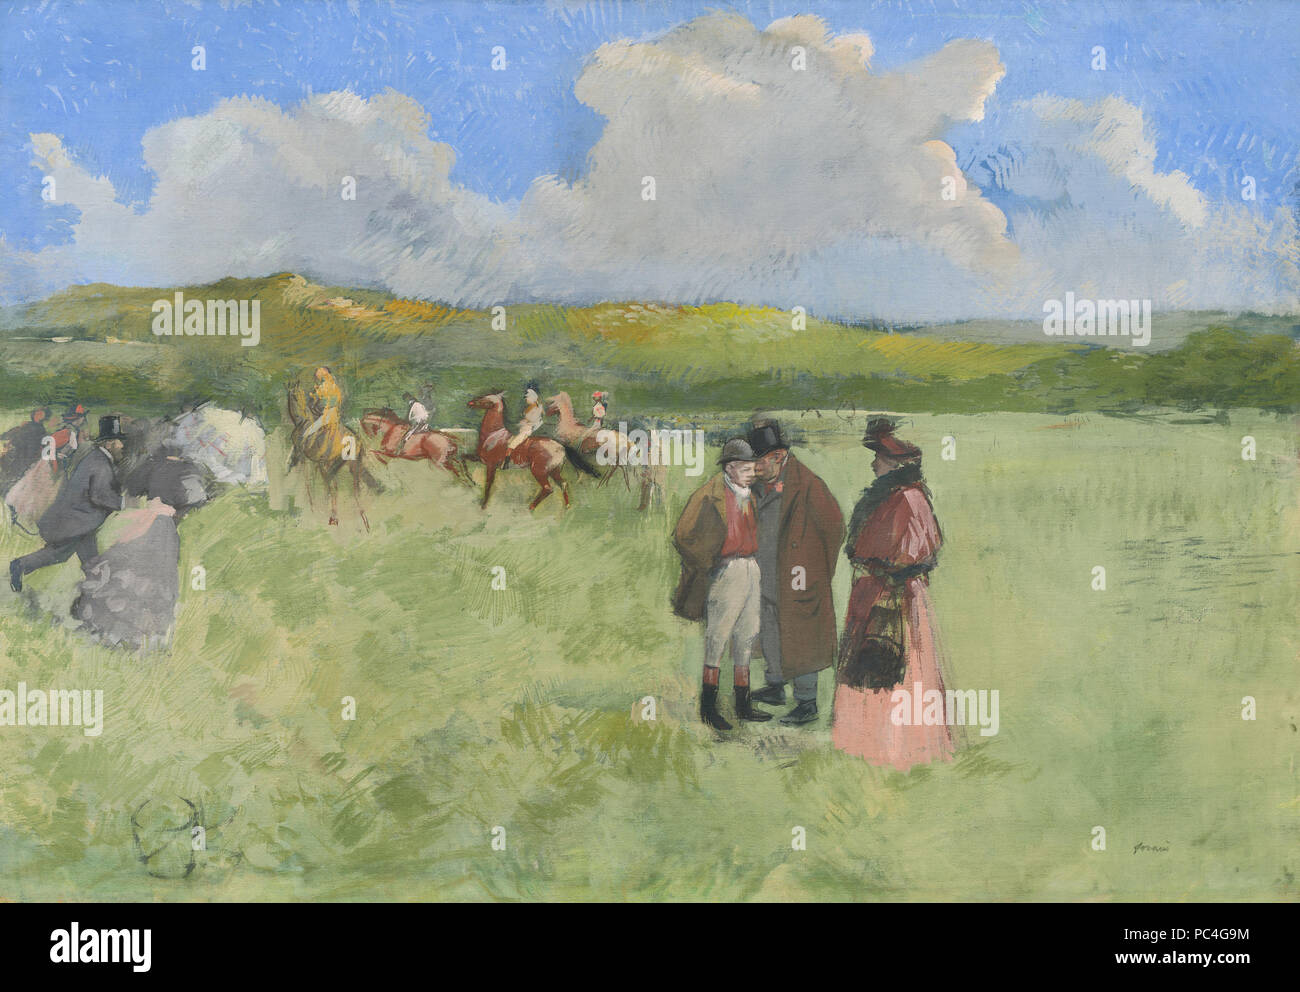 Jean-Louis Forain (French, 1852 - 1931 ), The Race Track, c. 1891, oil on canvas, Collection of Mr. and Mrs. Paul Mellon 599 The Race Track A12294 - Stock Image